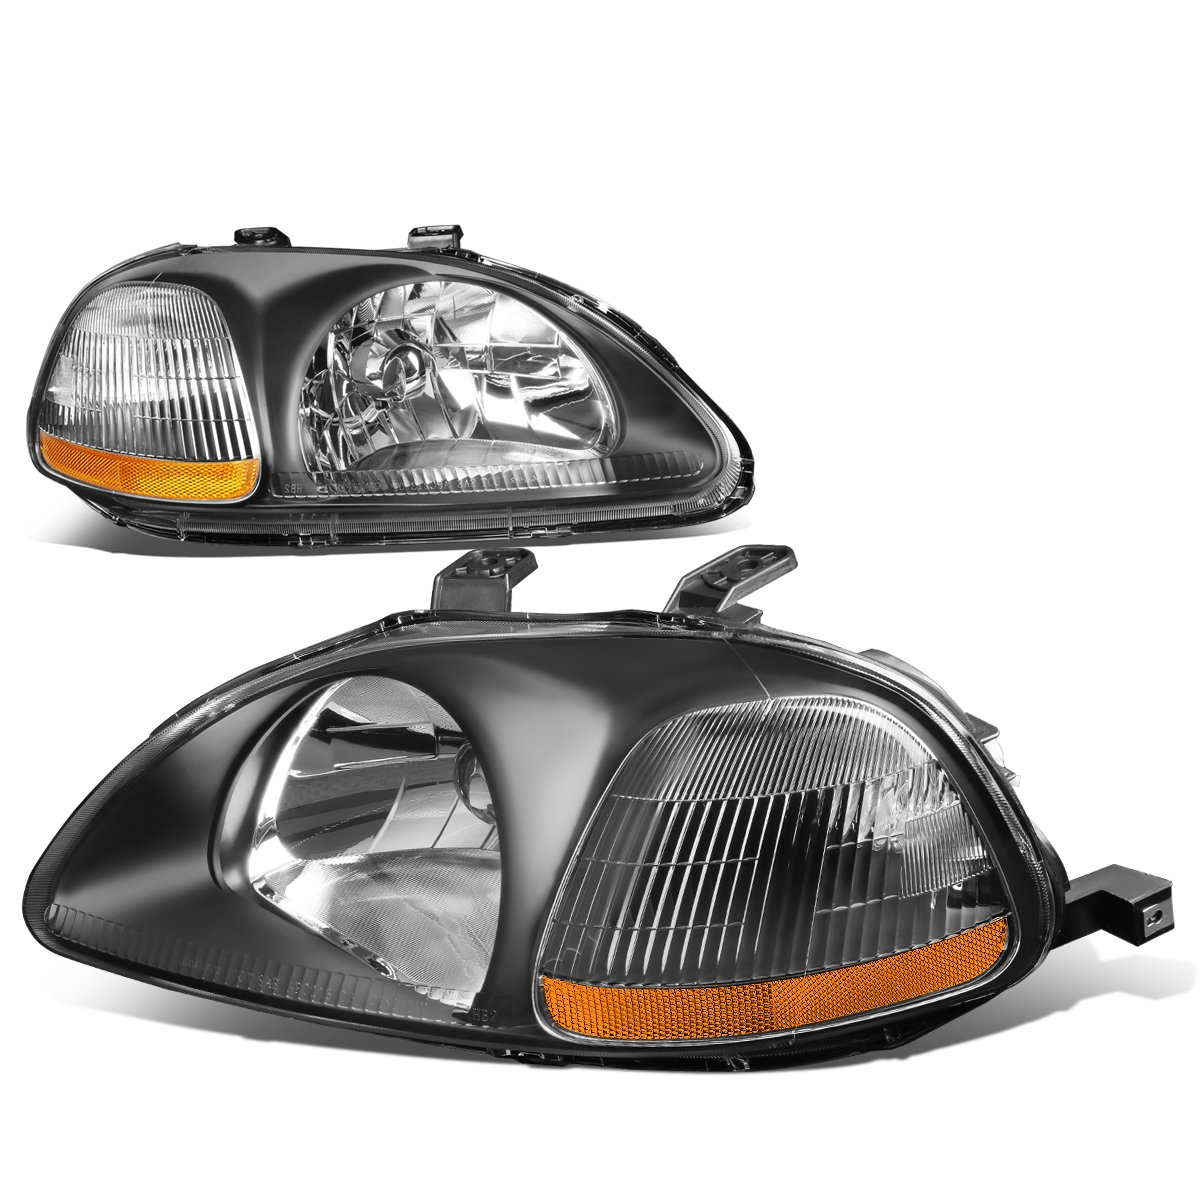 Pair of Black Housing Amber Corner Headlight Assembly Lamps Kit Replacement for Honda Civic 96-98